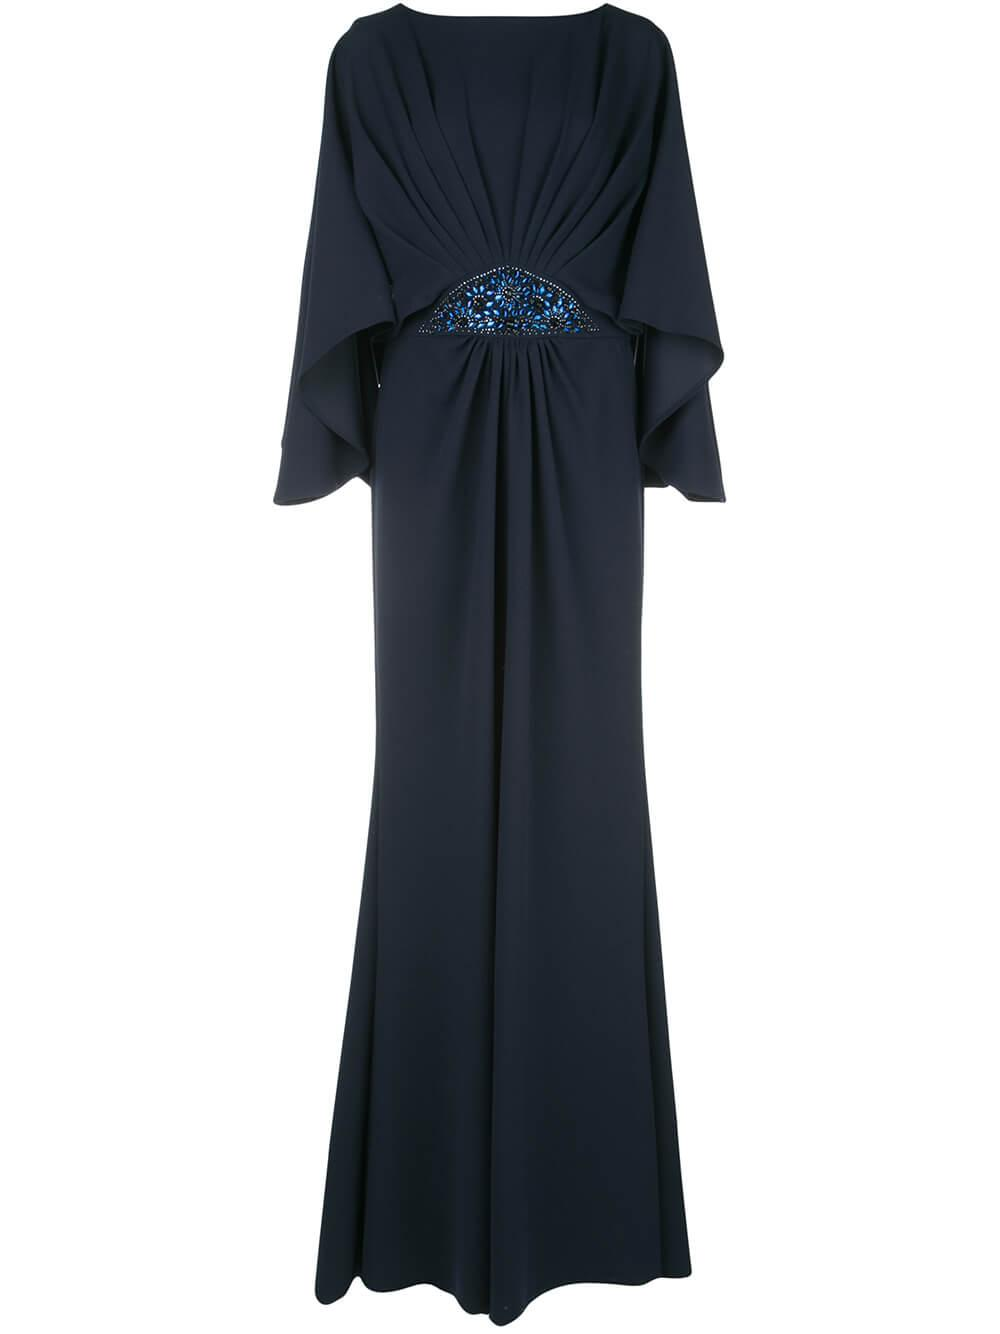 Blouson Top Embellished Waist Gown